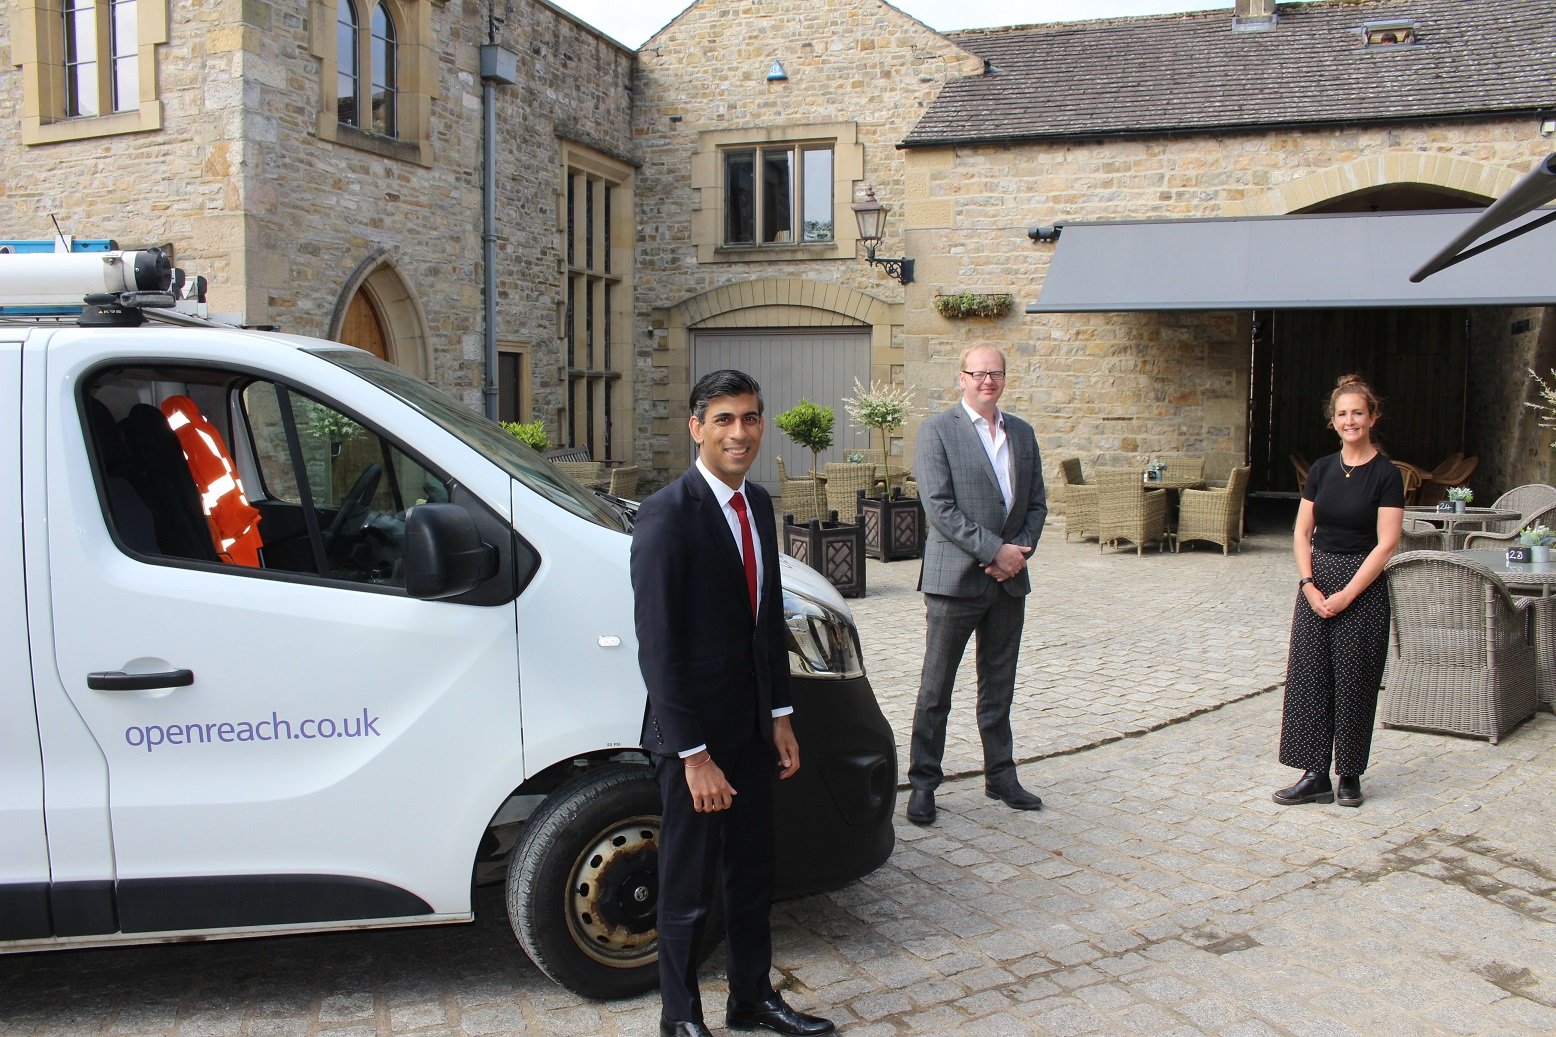 Rishi Sunak MP with Leo Morris, Manager of The Saddle Rooms and Ria Marshall-Rowe, Front of House Manager of The Saddle Rooms